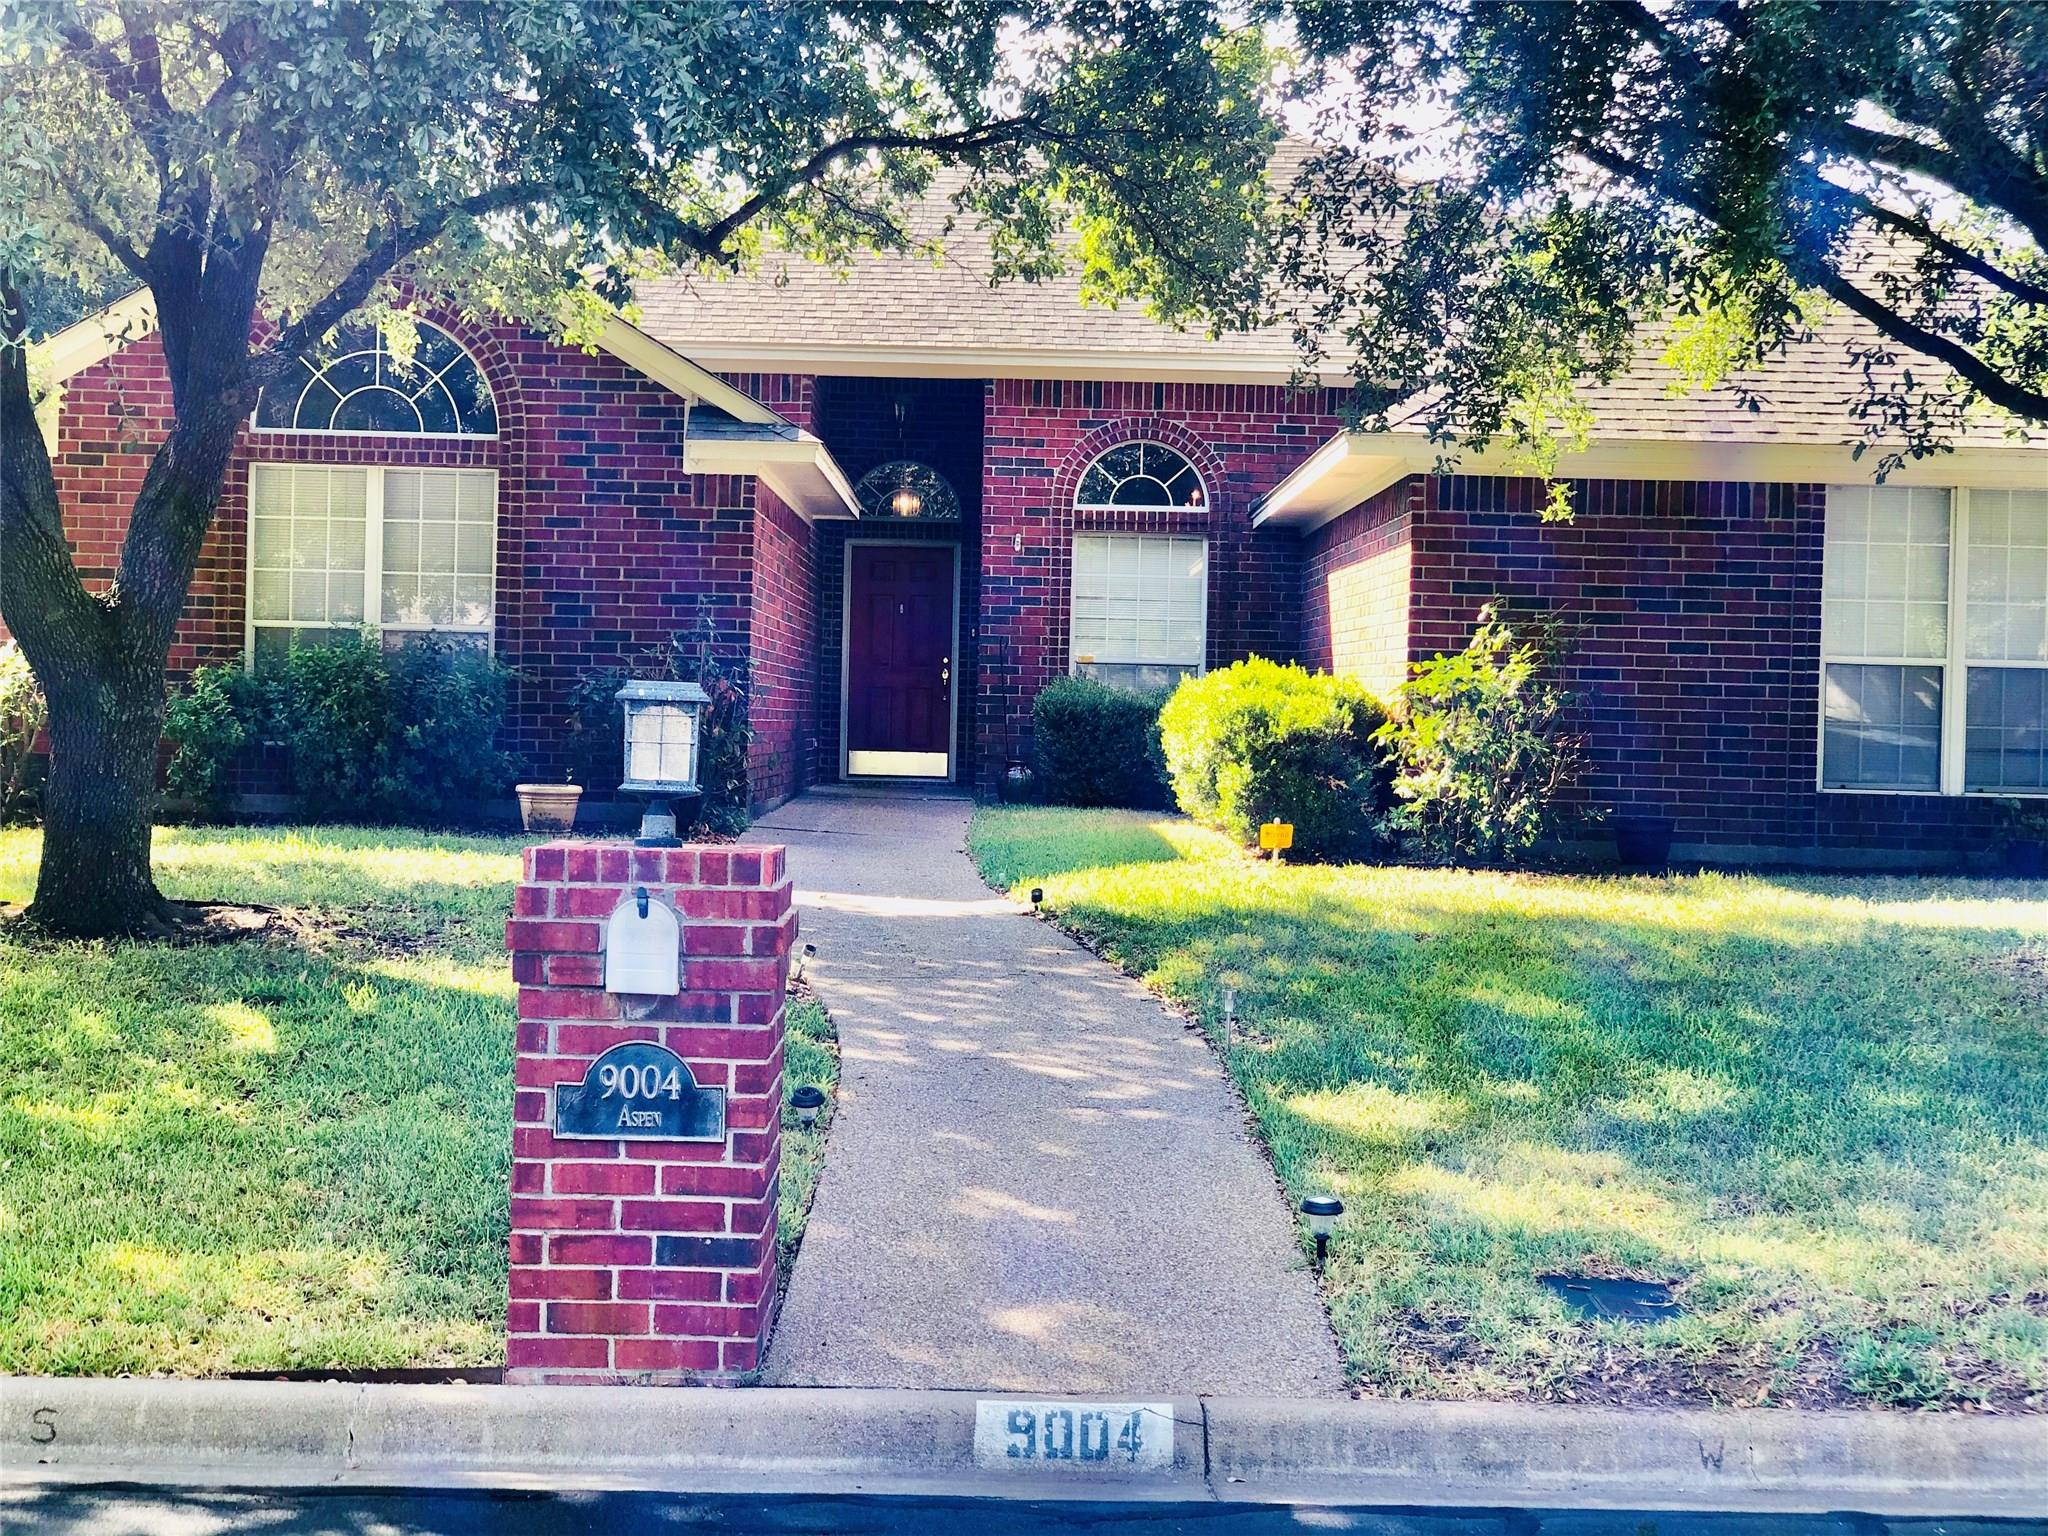 9004 Aspen Drive Property Photo - Waco, TX real estate listing